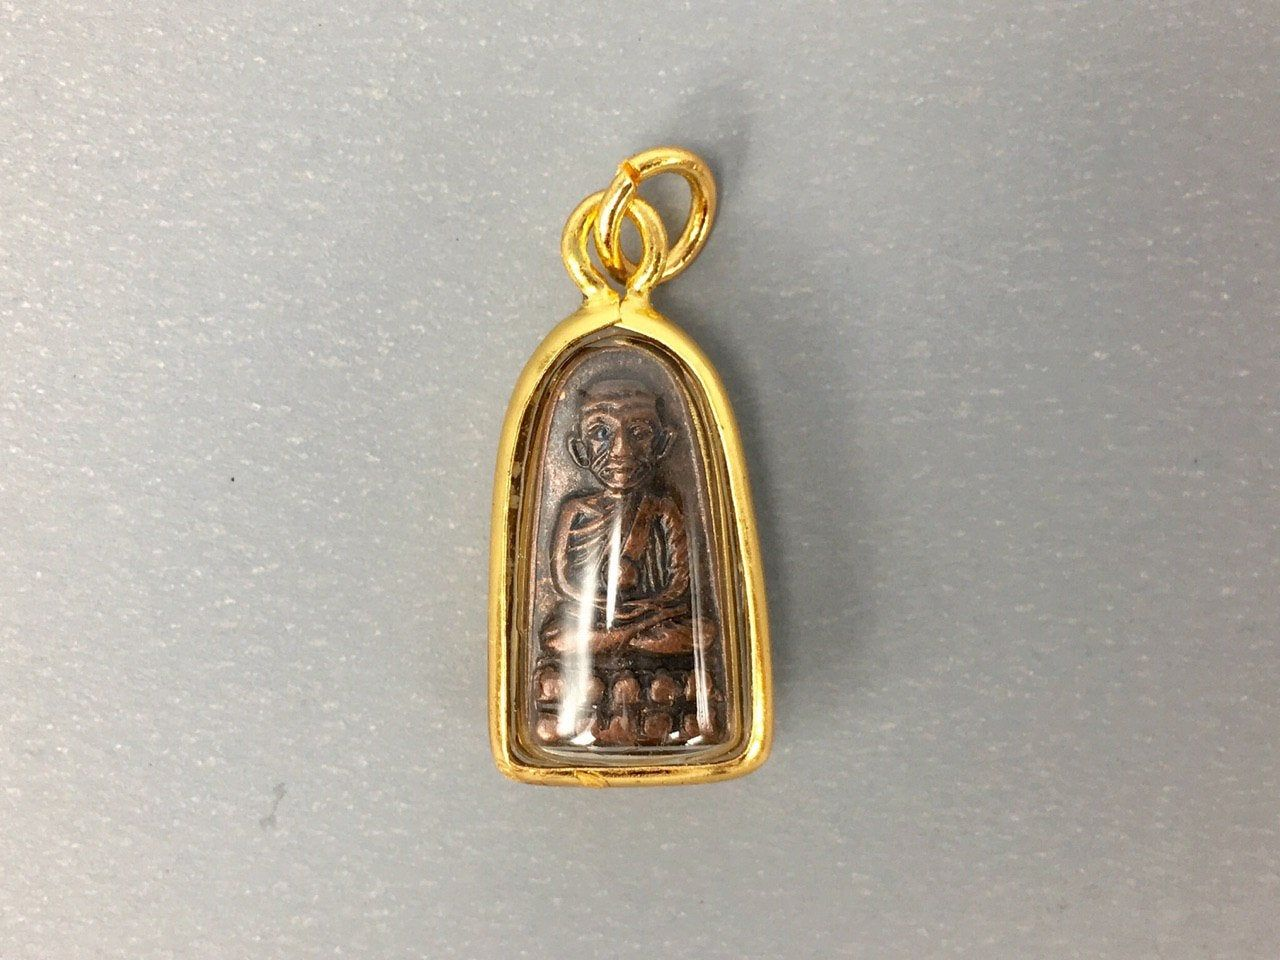 Buddhist LP Thuad Monk Pendant Thai Amulet Magic Power Protection Lucky Talisman